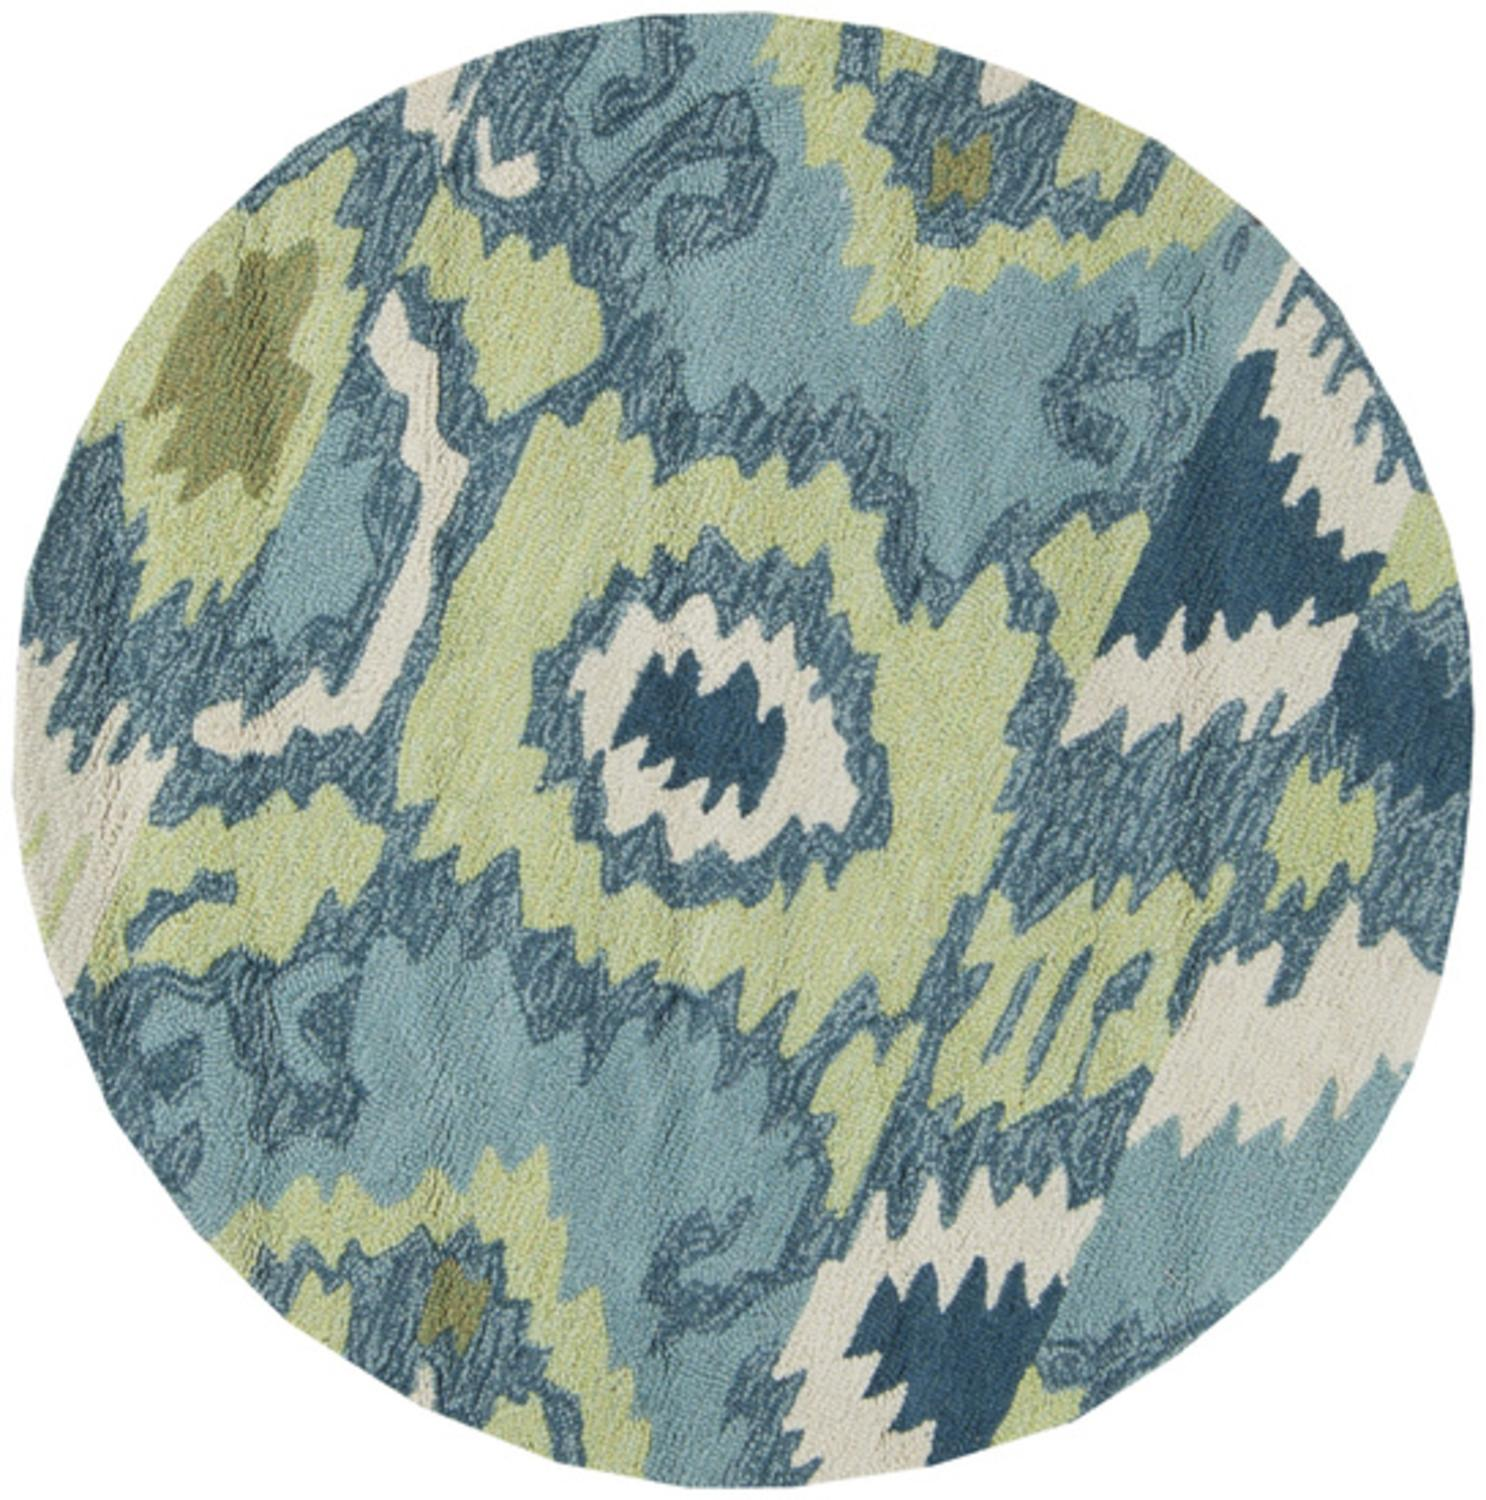 3' Azure Dreams Teal Blue and Light Green Hand Hooked Round Area Throw Rug